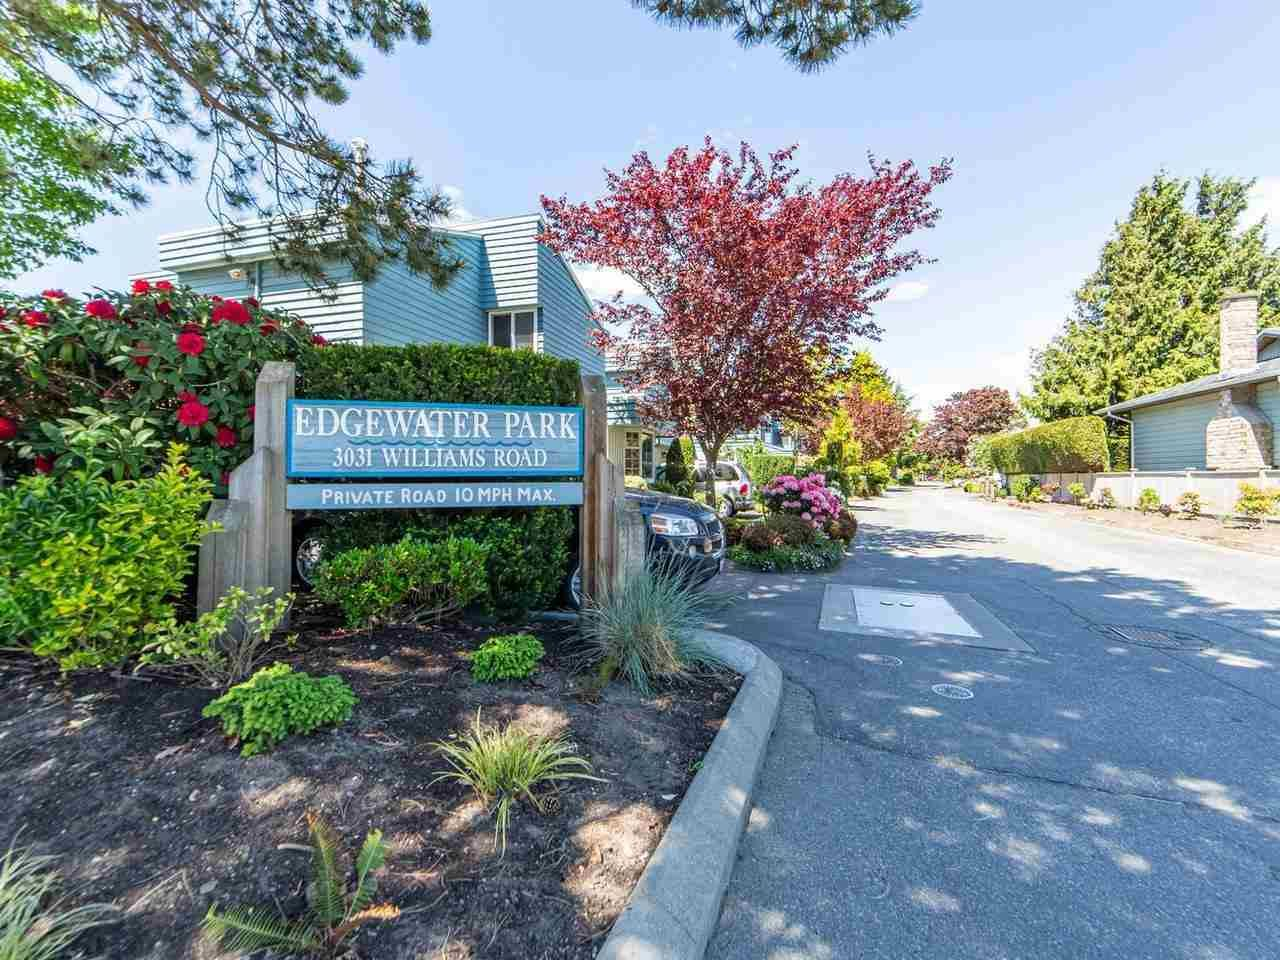 Main Photo: 55 3031 WILLIAMS ROAD in Richmond: Seafair Townhouse for sale : MLS®# R2584254